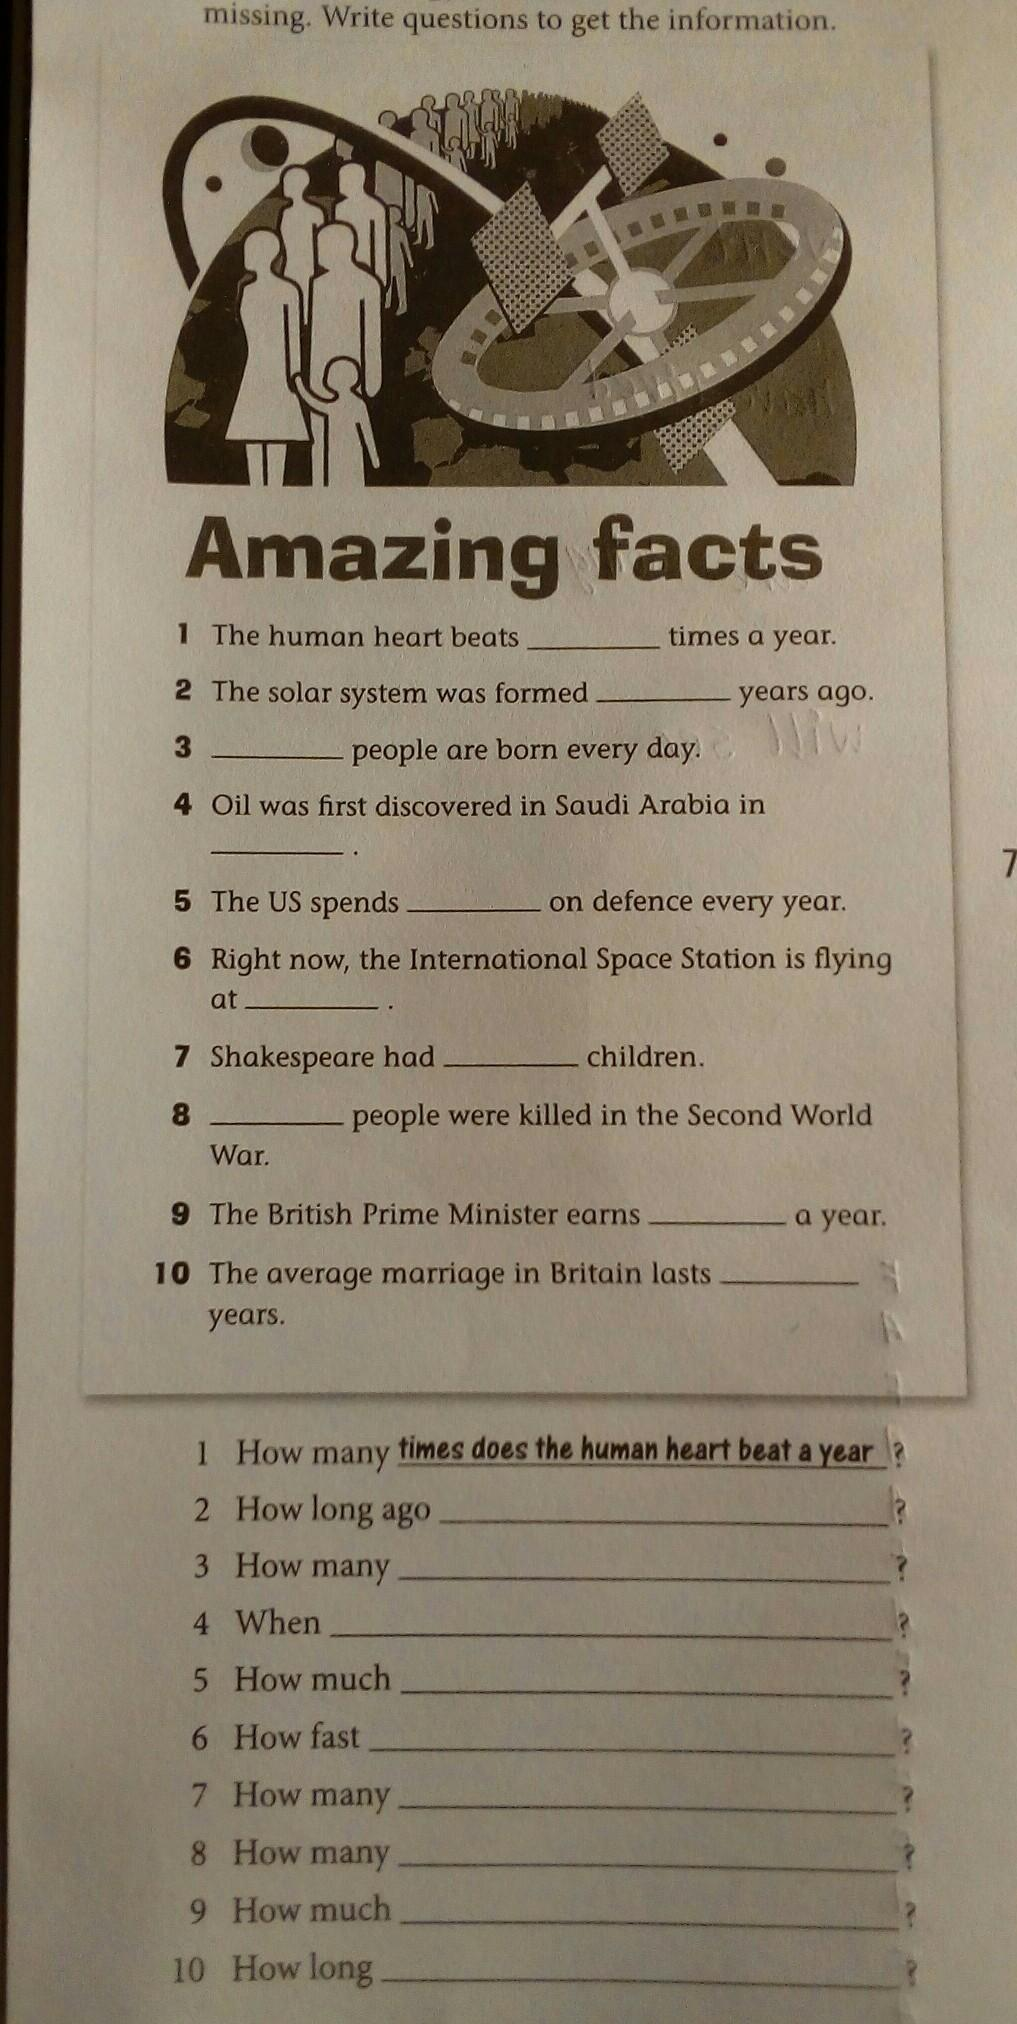 Read the amazing facts. Some information is